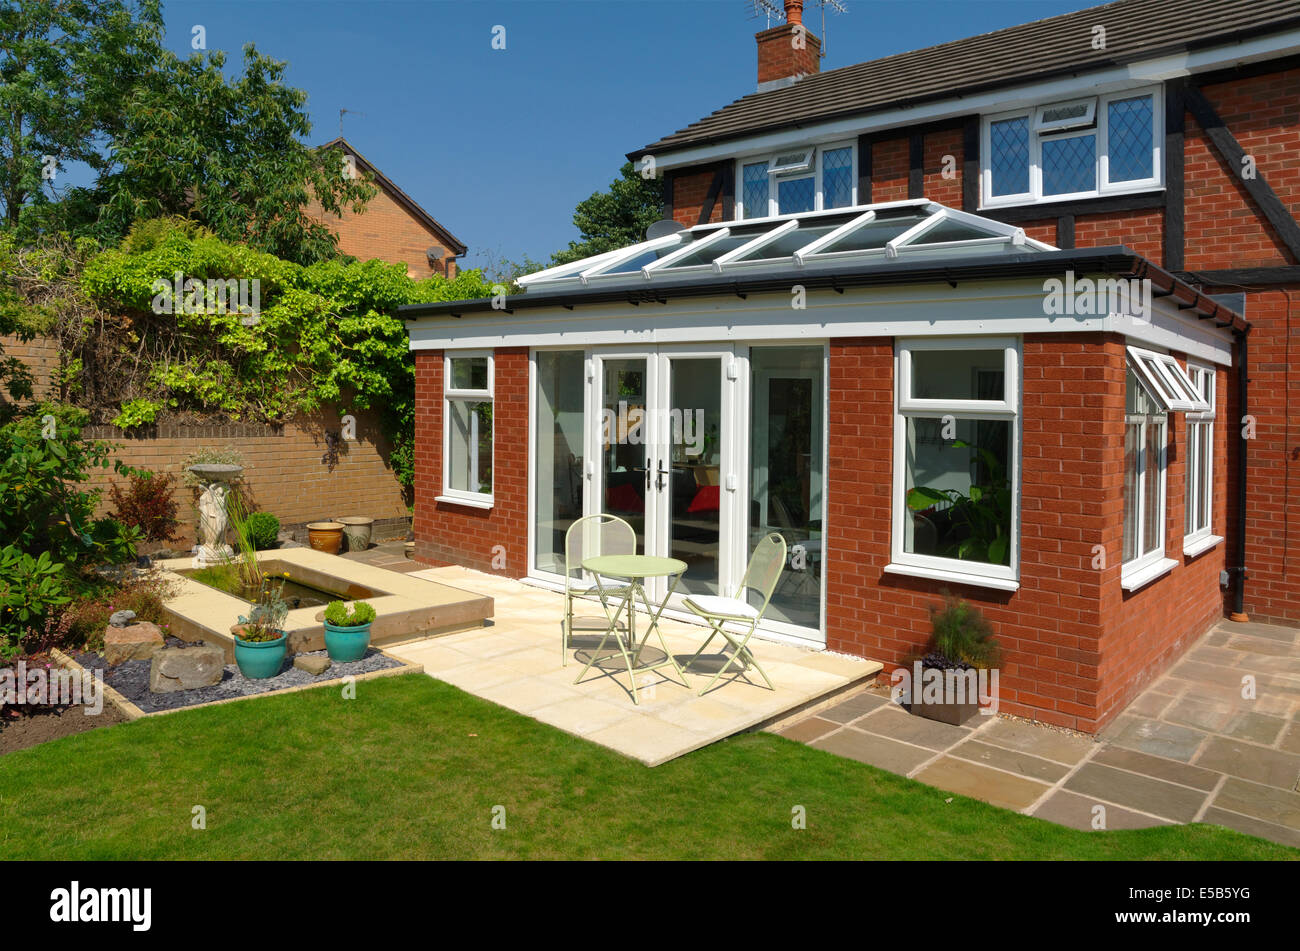 Orangery style conservatory exterior view home improvement with doors closed. - Stock Image